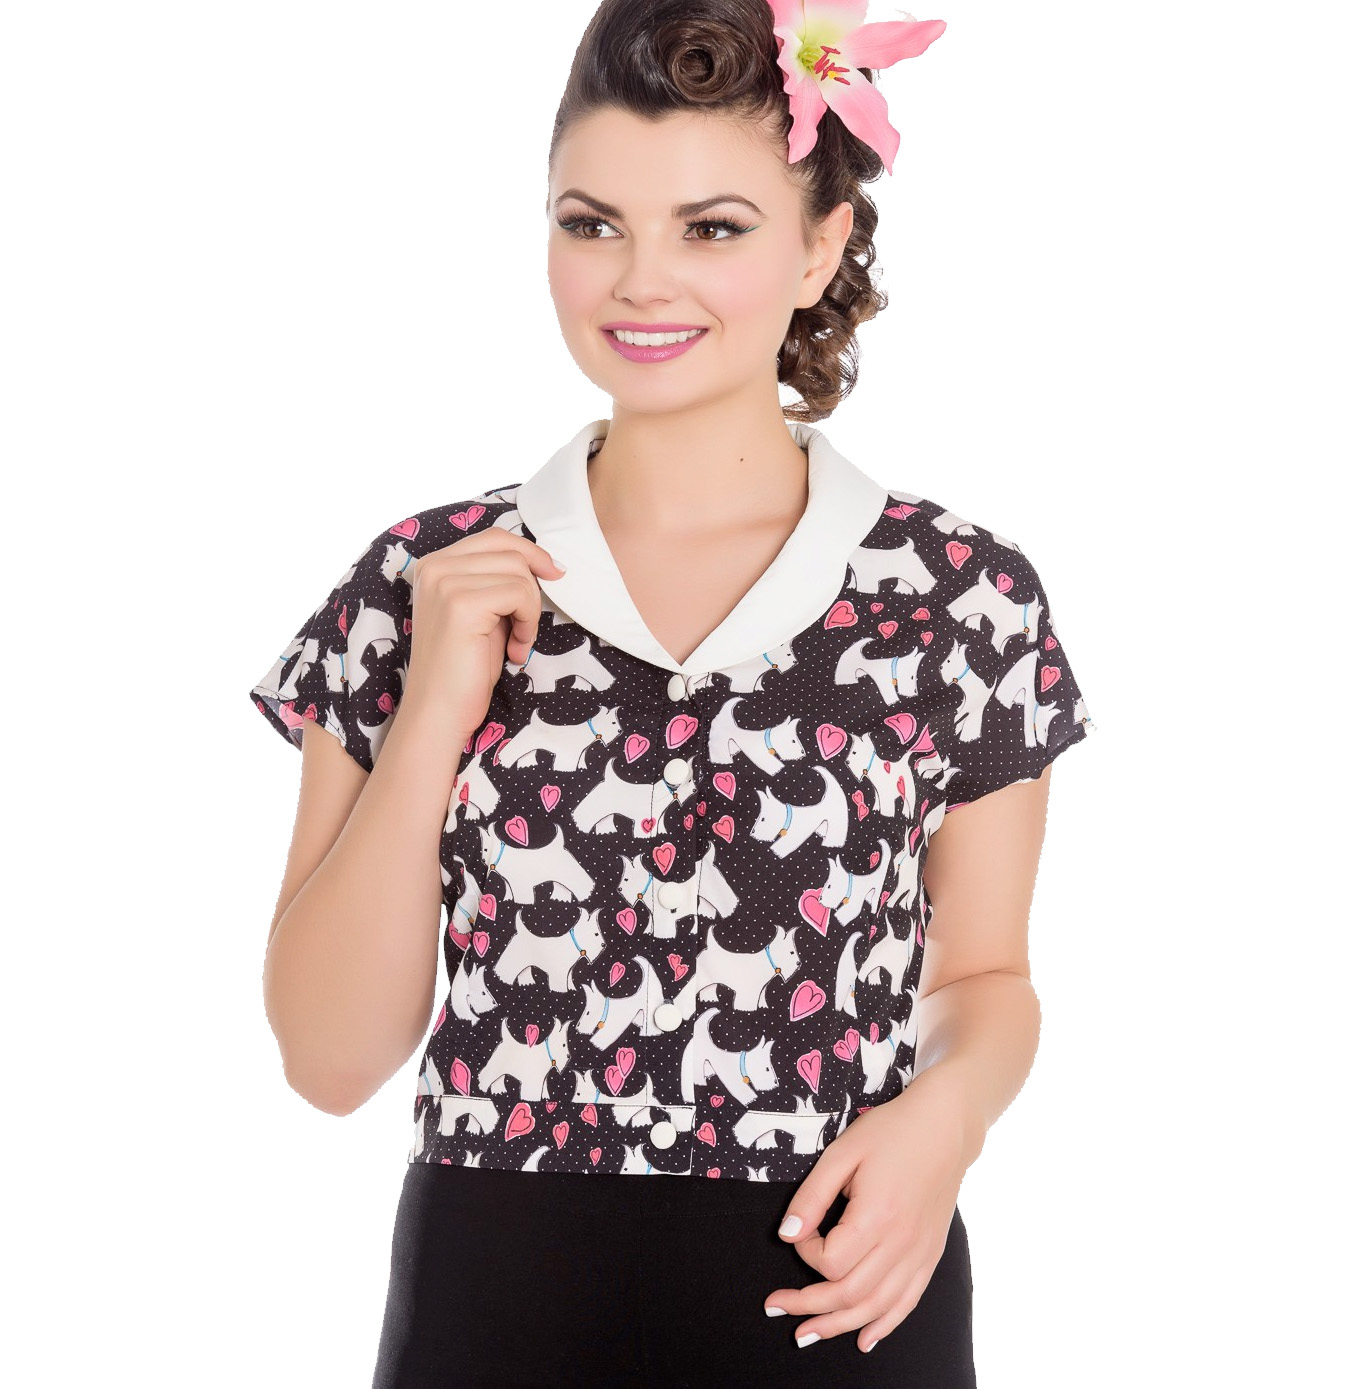 Hell-Bunny-50s-Retro-Top-Scottie-Dog-Heart-AGGY-Cropped-Blouse-Shirt-All-Sizes thumbnail 27